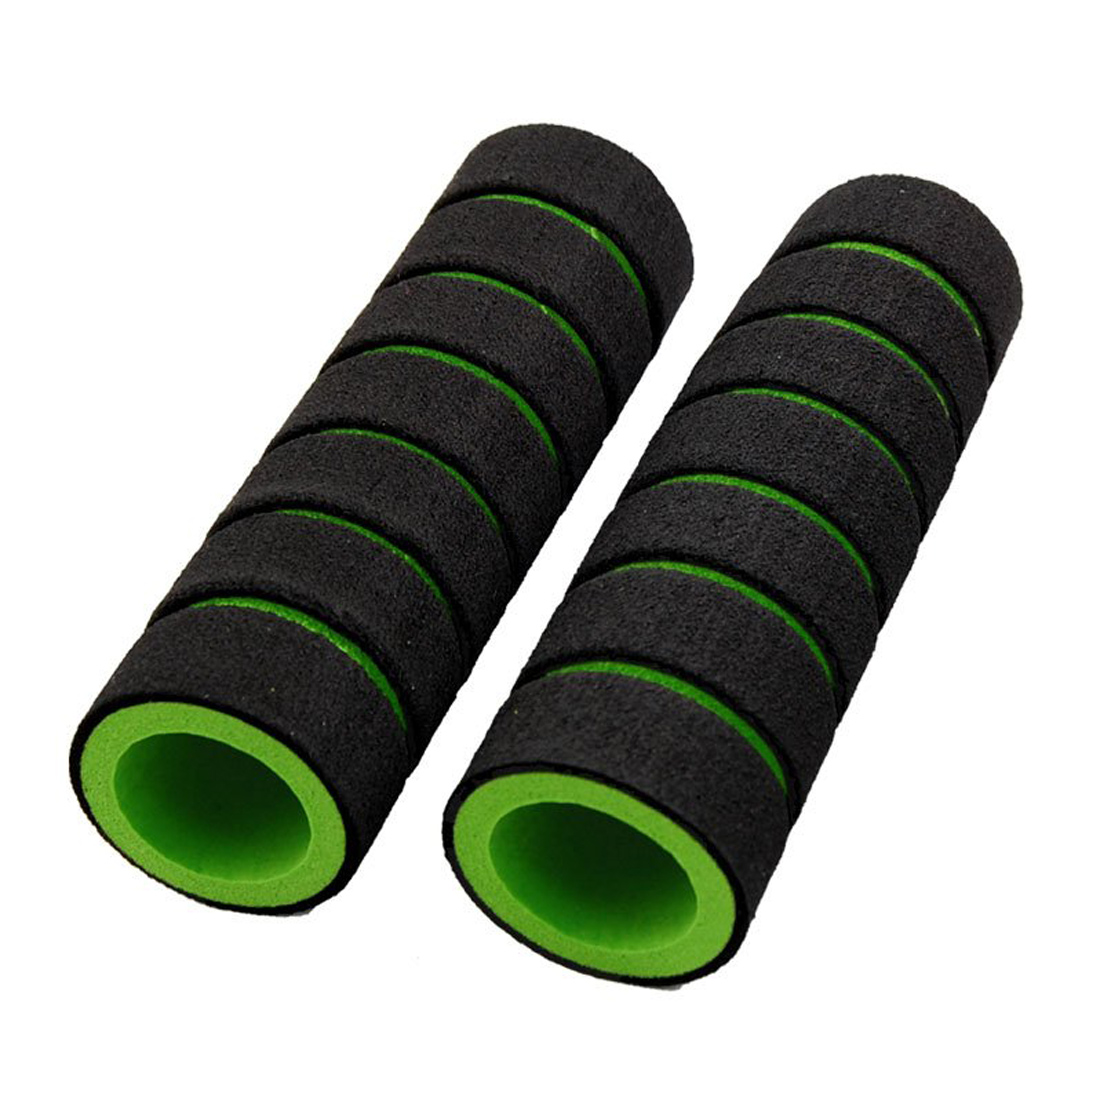 Good Deal Nonslip Soft Foam Bike Bicycle Handle Bar Grips Cover 4 Pcs